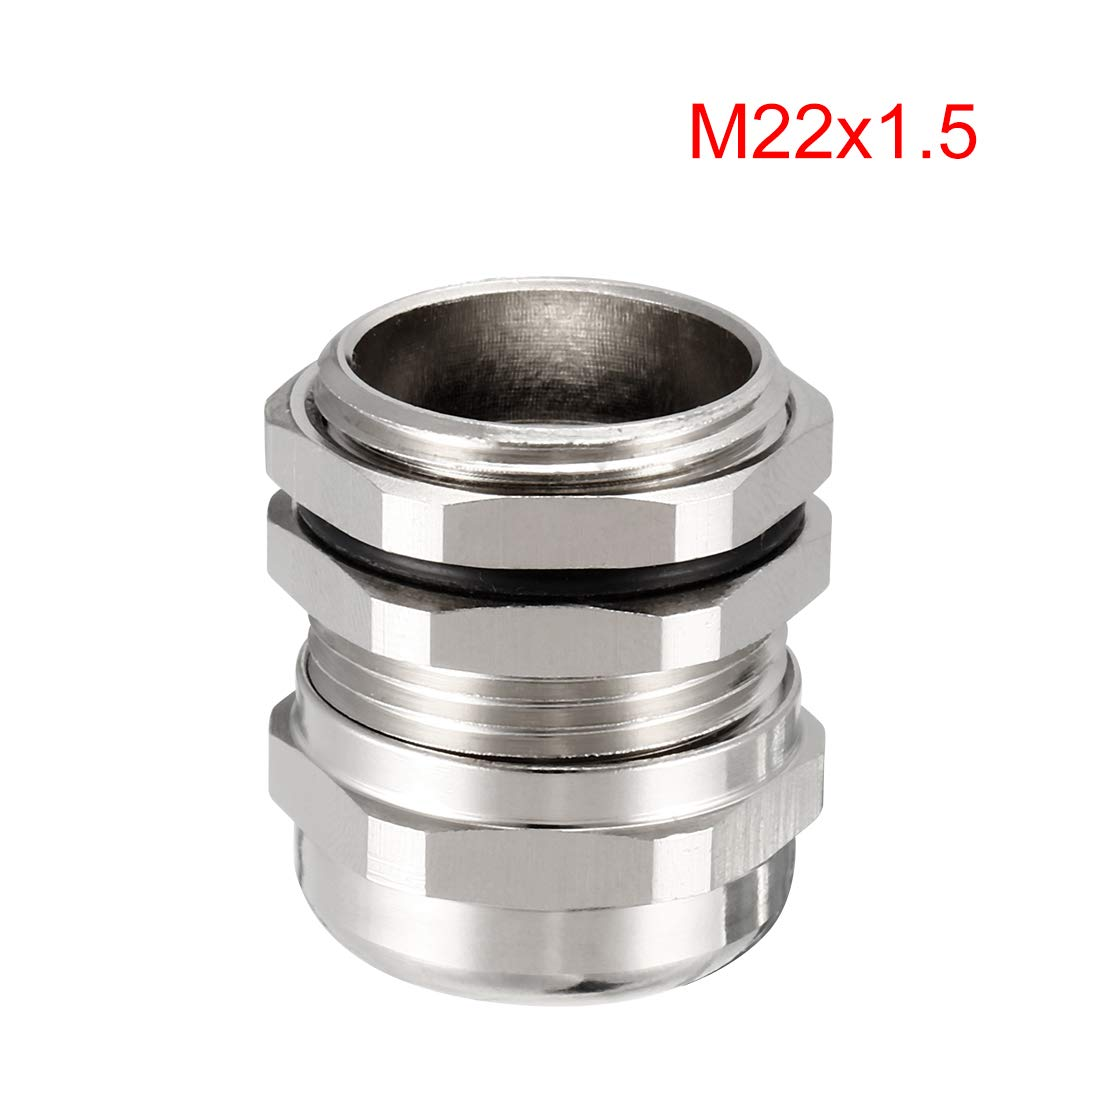 uxcell 2Pcs M12 Cable Gland Metal Waterproof Connector Wire Glands Joints for 3mm-6.5mm Dia Range a18032200ux0354